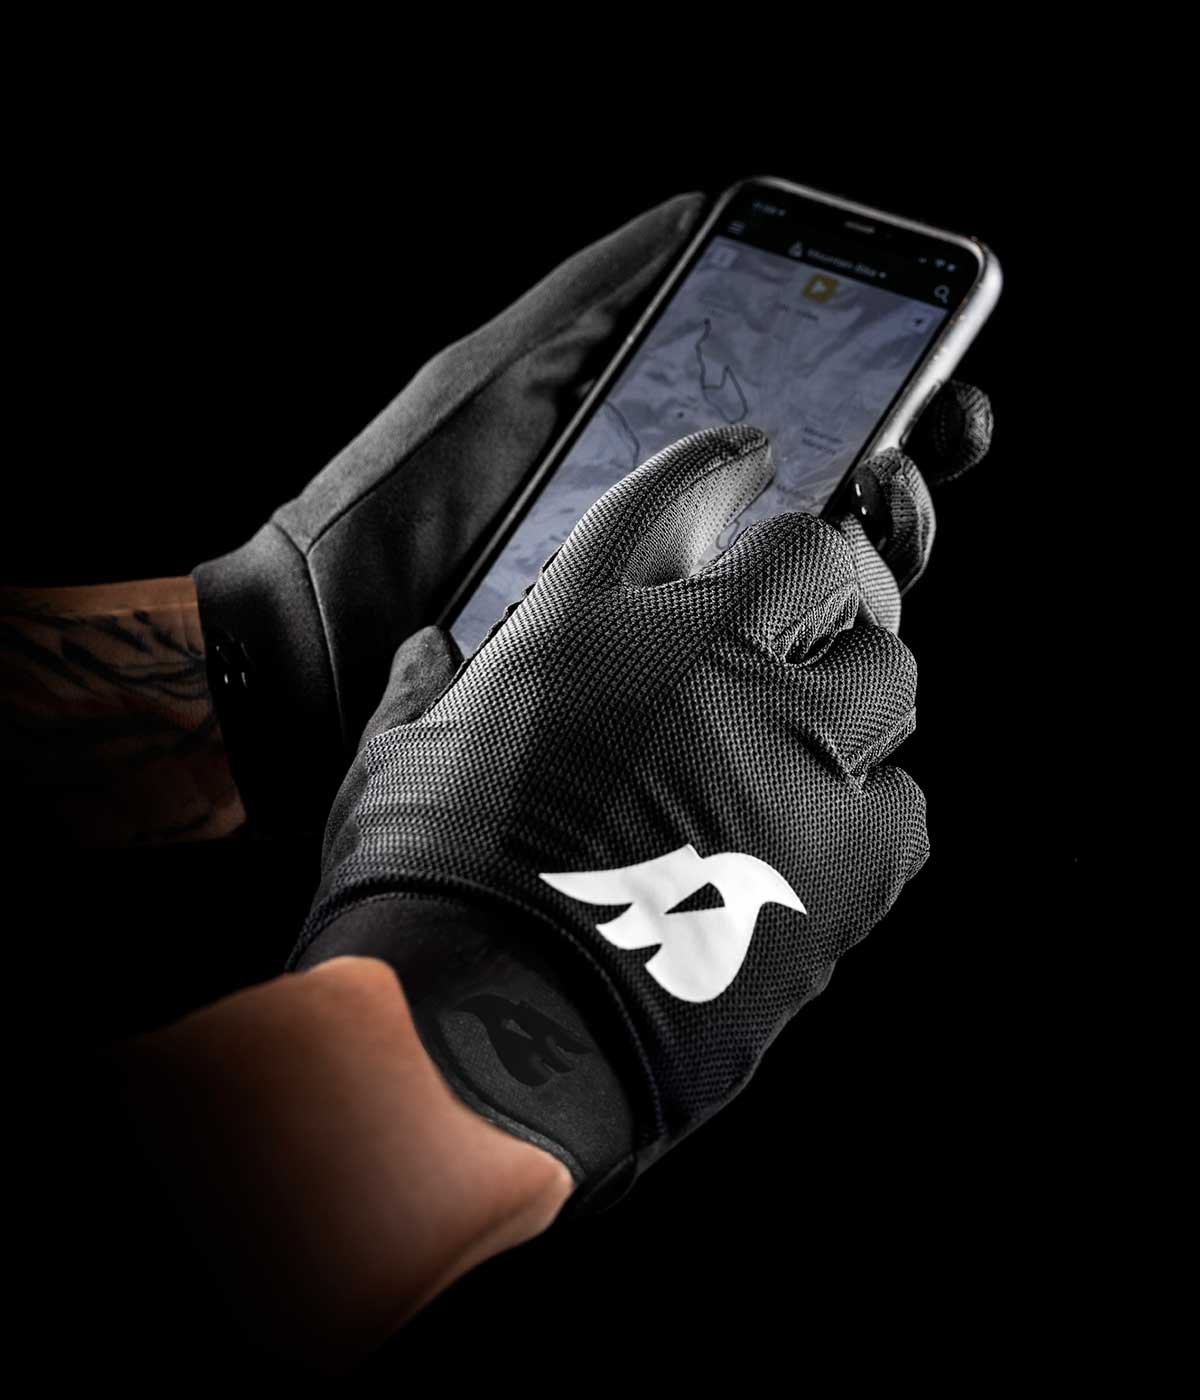 bluegrass union mtb gloves touchscreen use compatible